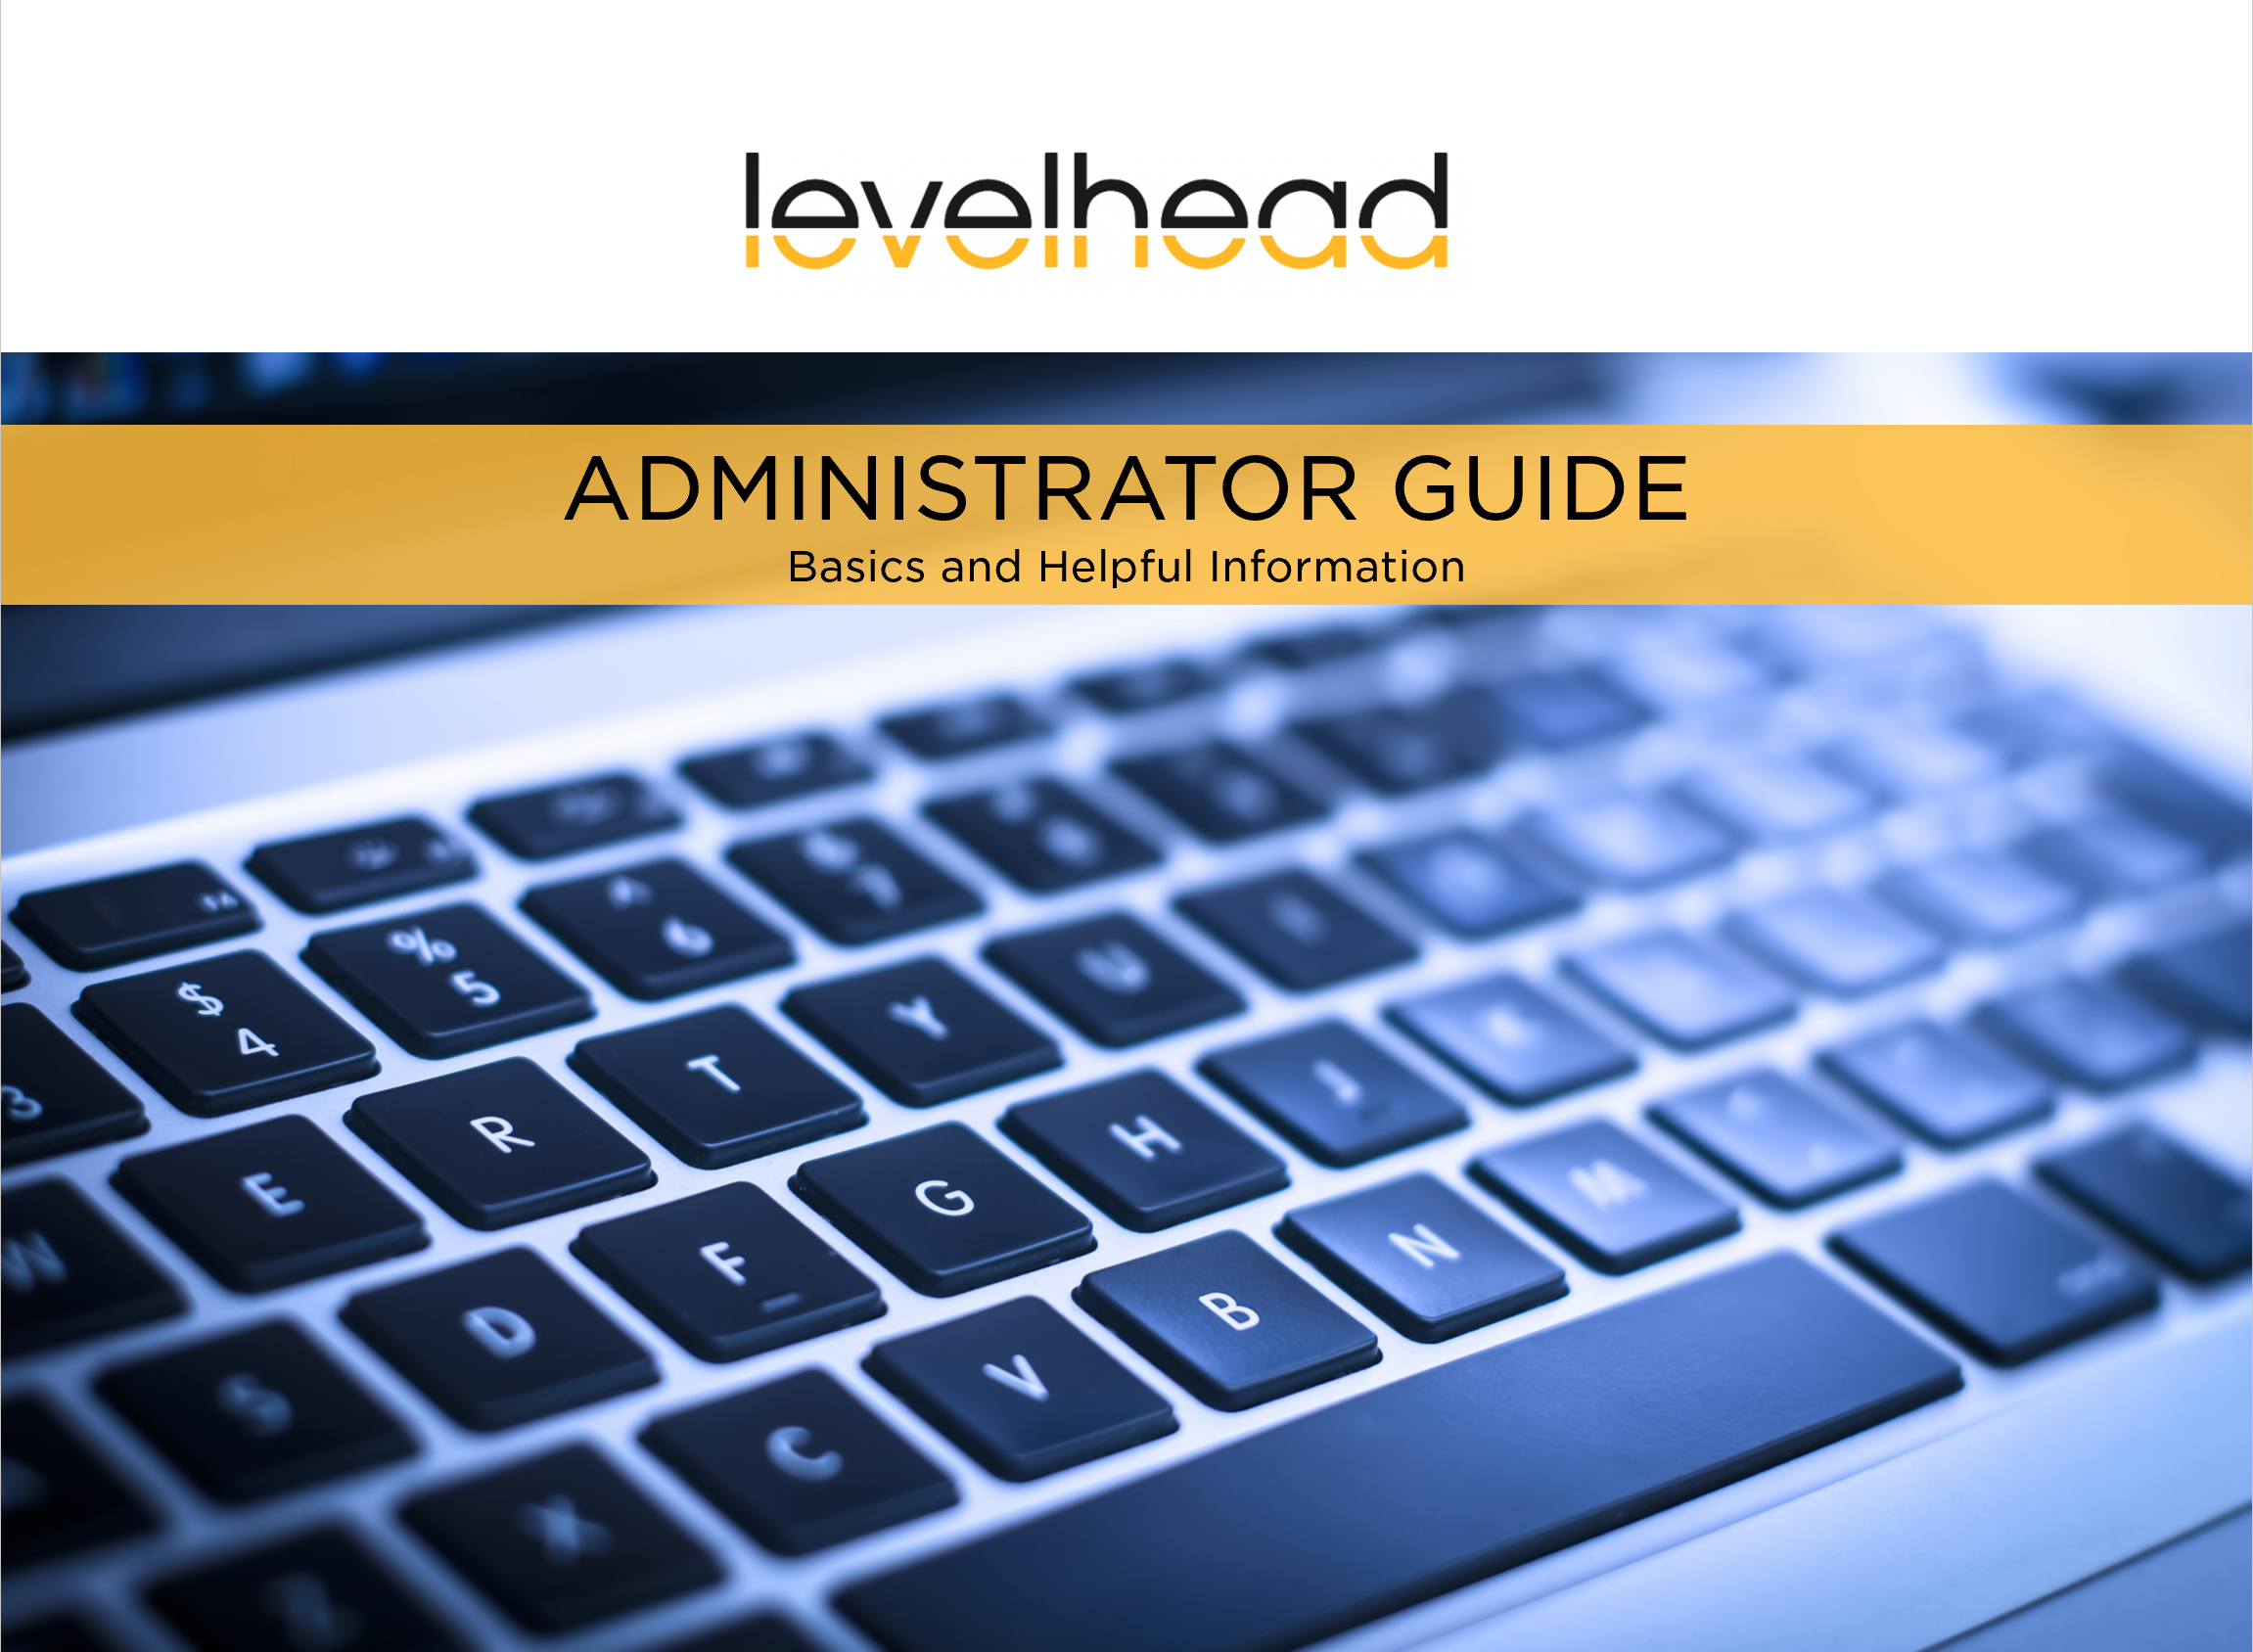 Click the image above to access the Administrator Guide.